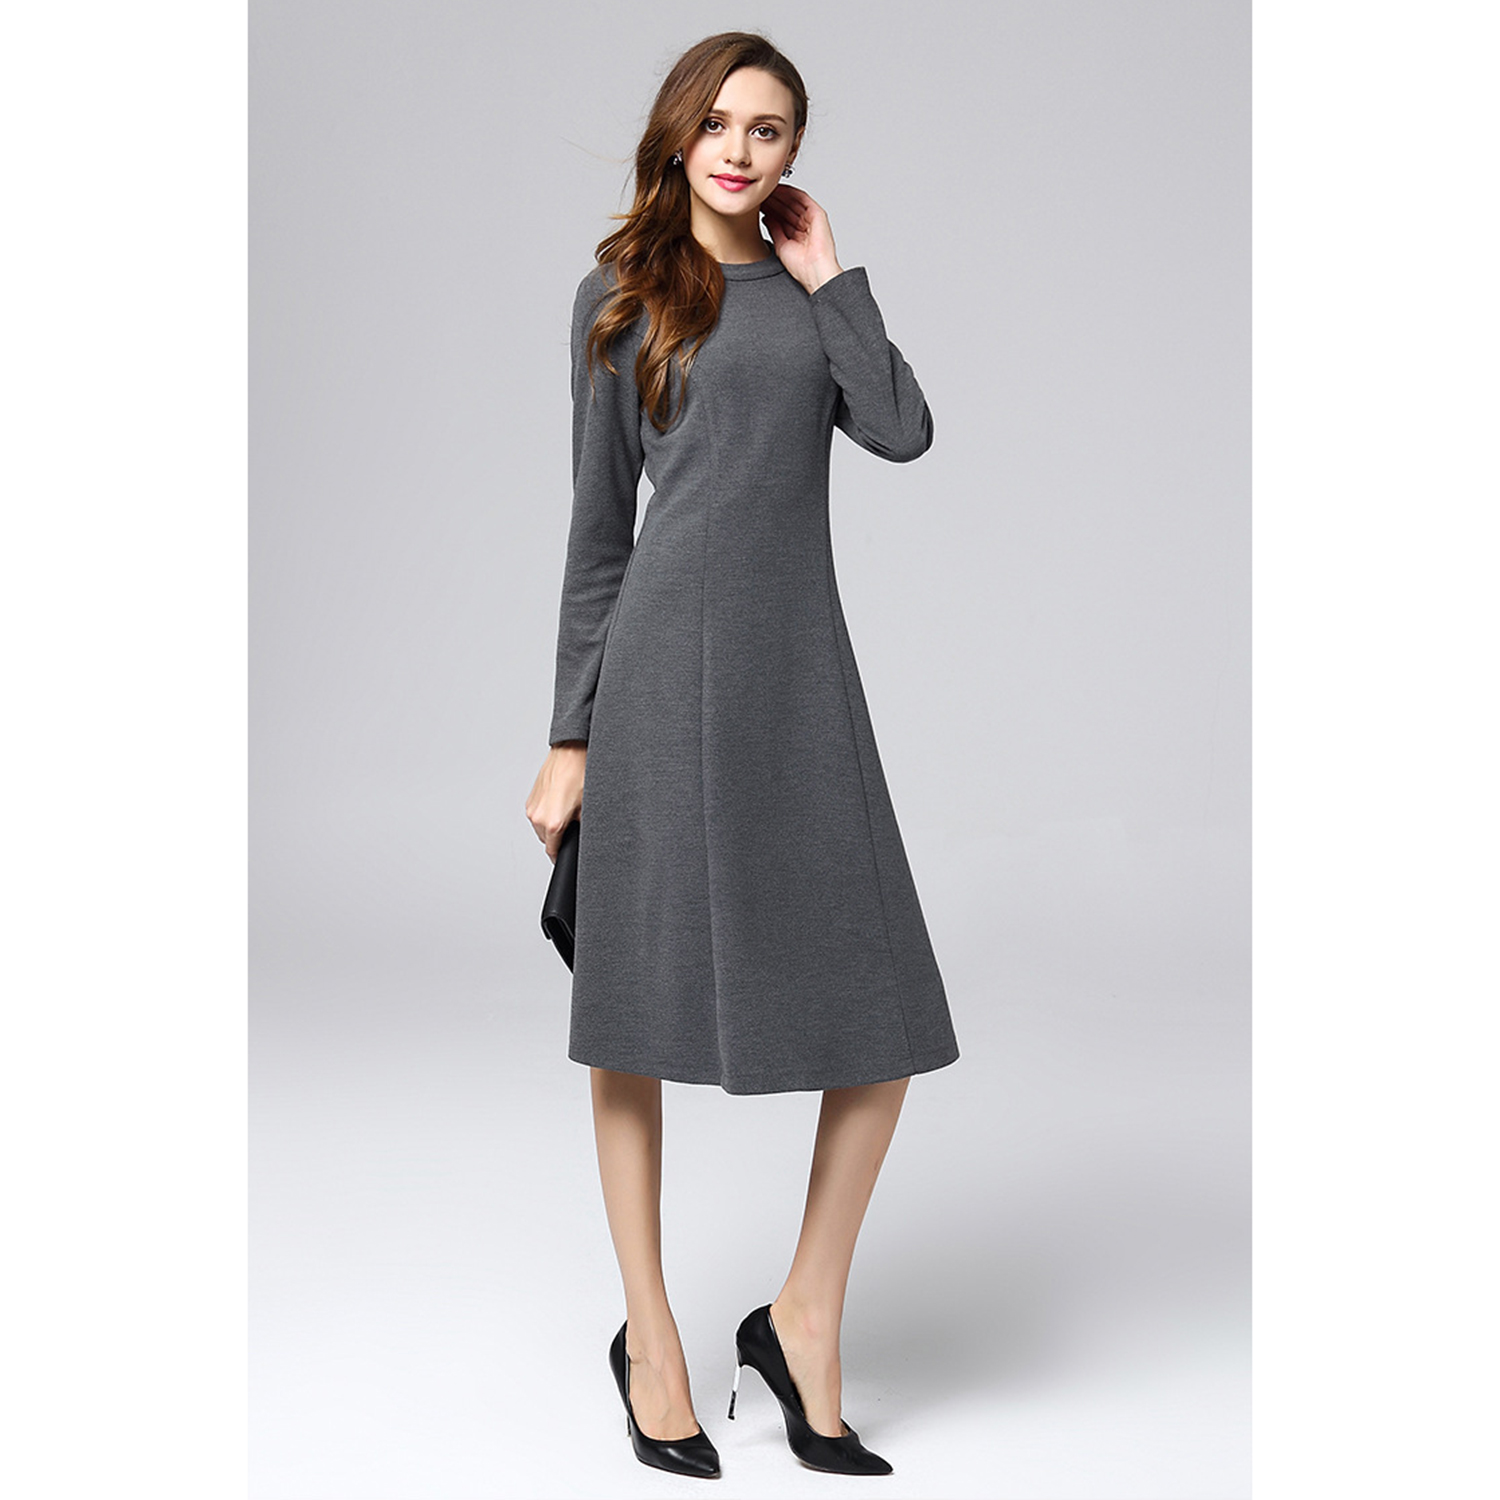 Marina Kaneva 2019 Large Size Simple Temperament Dress Female High Waist Slim Long Sleeve Commuter Autumn and Winter Primer A-